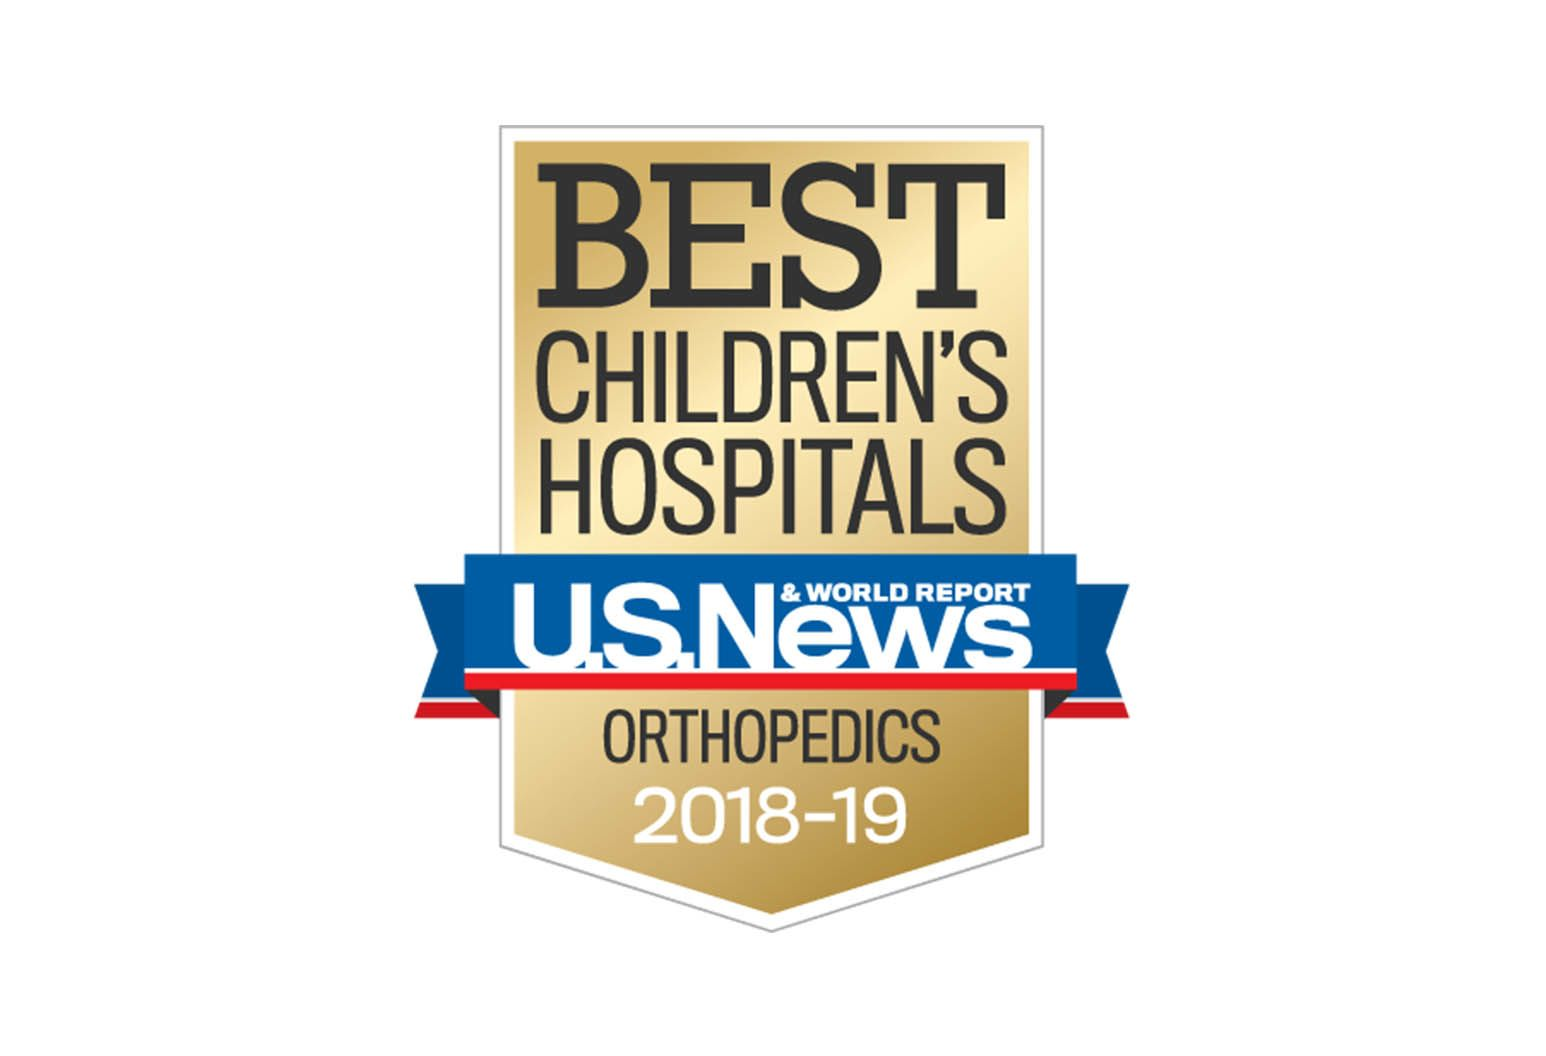 This is the U.S News & World Report emblem for superior pediatric care in orthopaedics for 2018 to 2019.